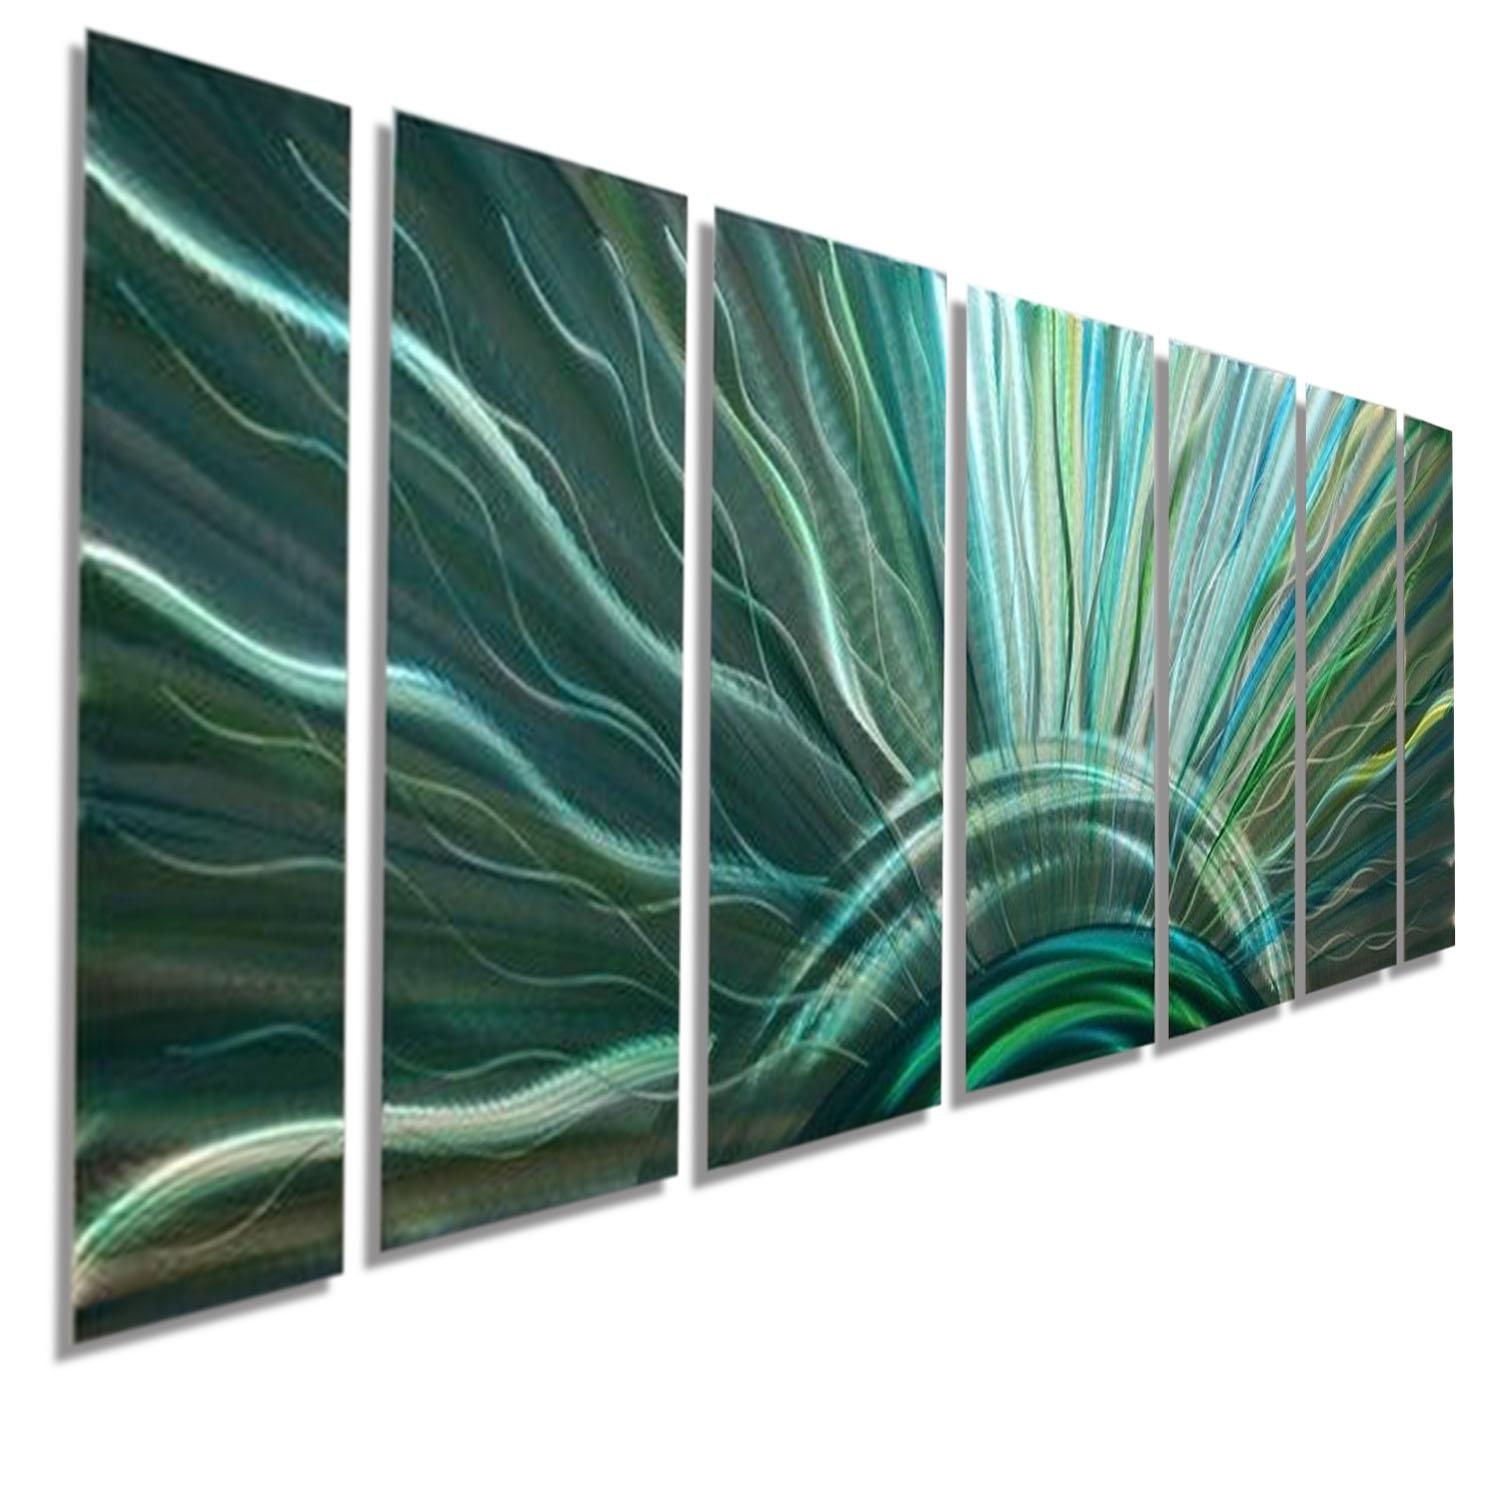 Blue Moon – Silver With Blue & Green Fusion Modern Metal Wall Art Regarding Fused Glass And Metal Wall Art (View 20 of 20)